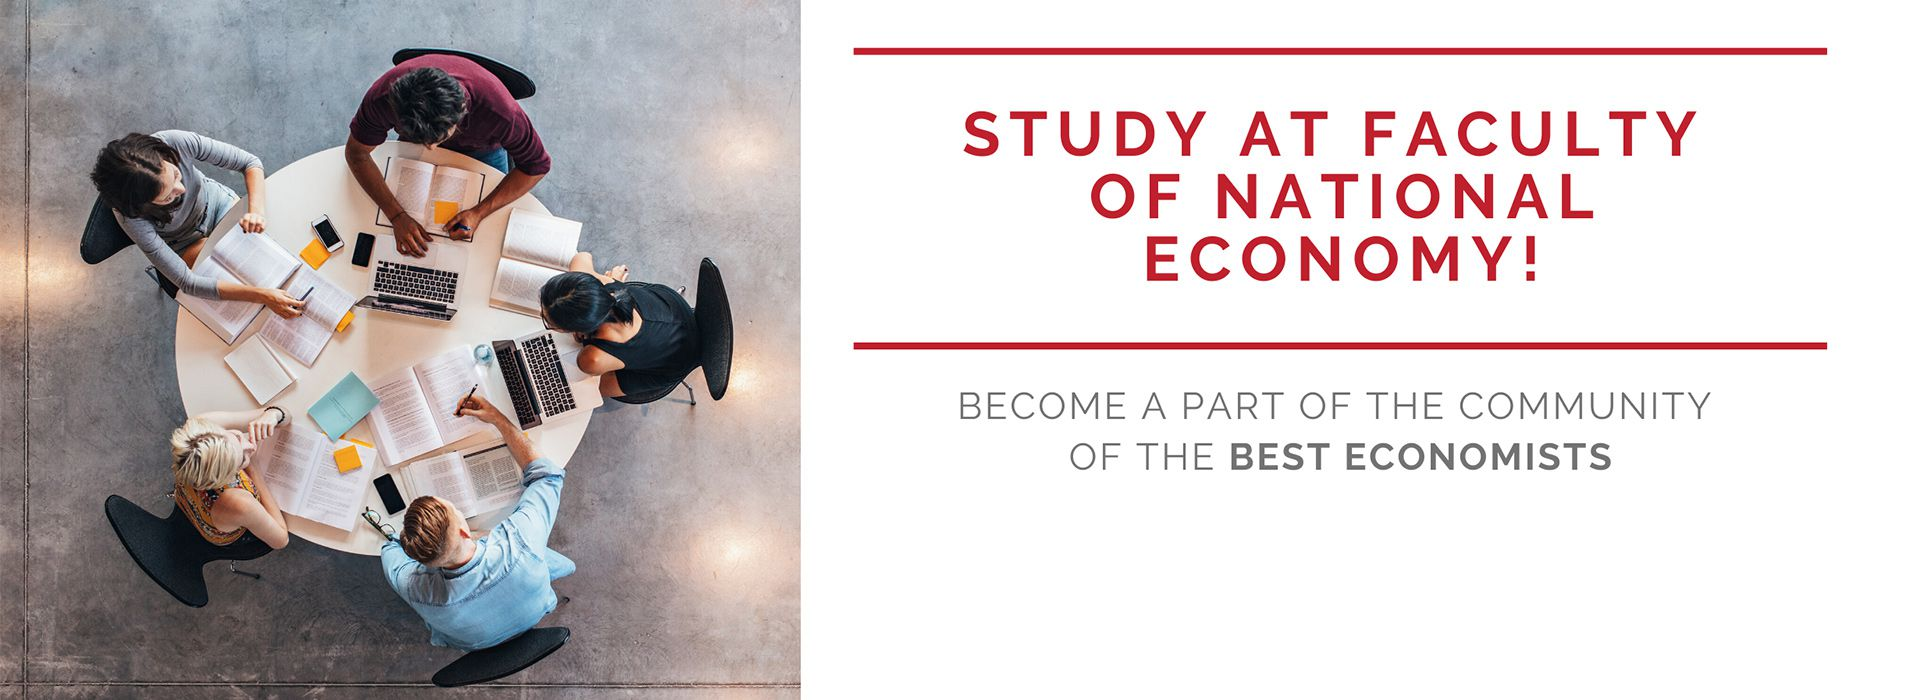 Study at Faculty of National Economy!